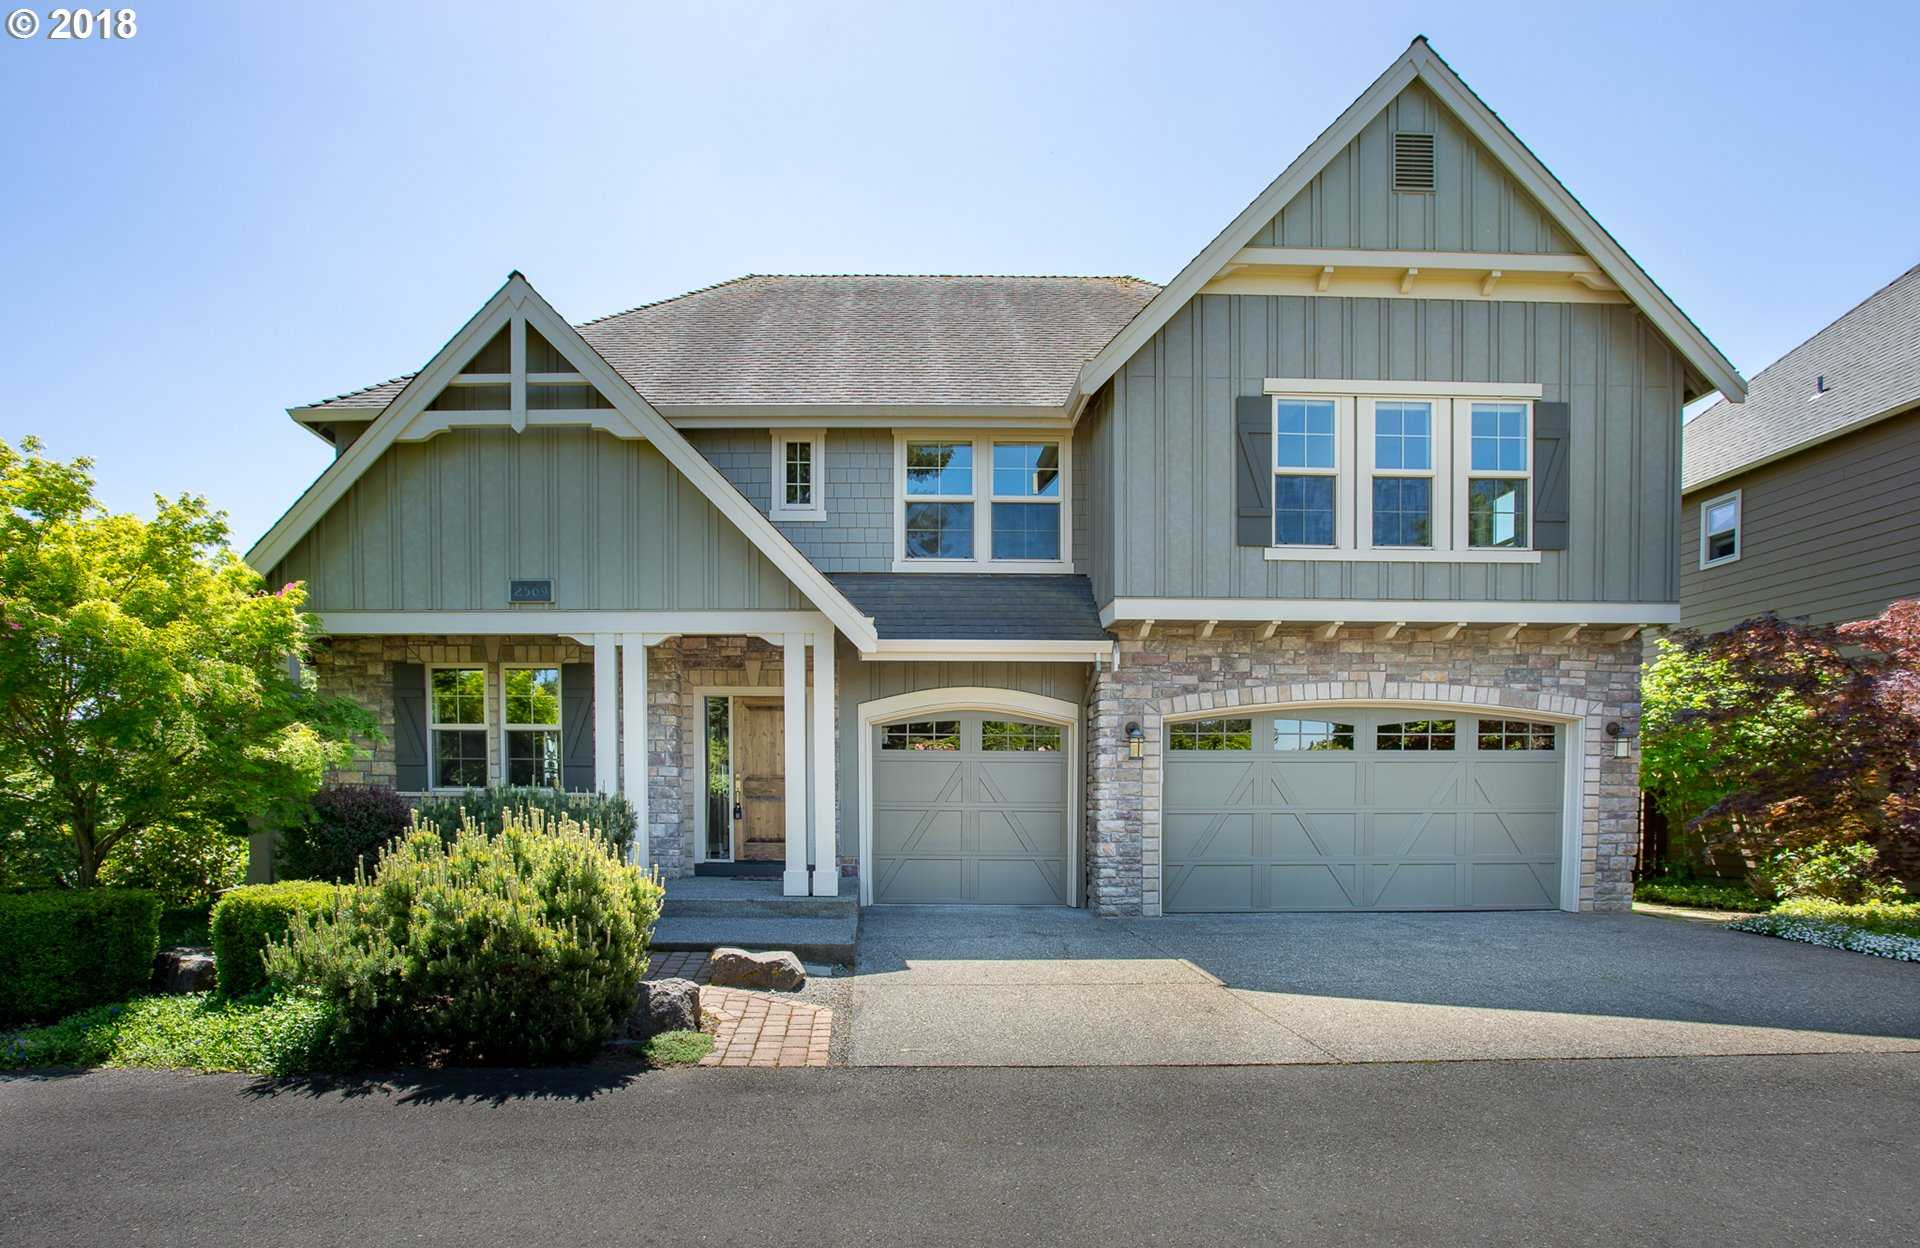 $1,018,000 - 5Br/4Ba -  for Sale in Prune Hill, Camas